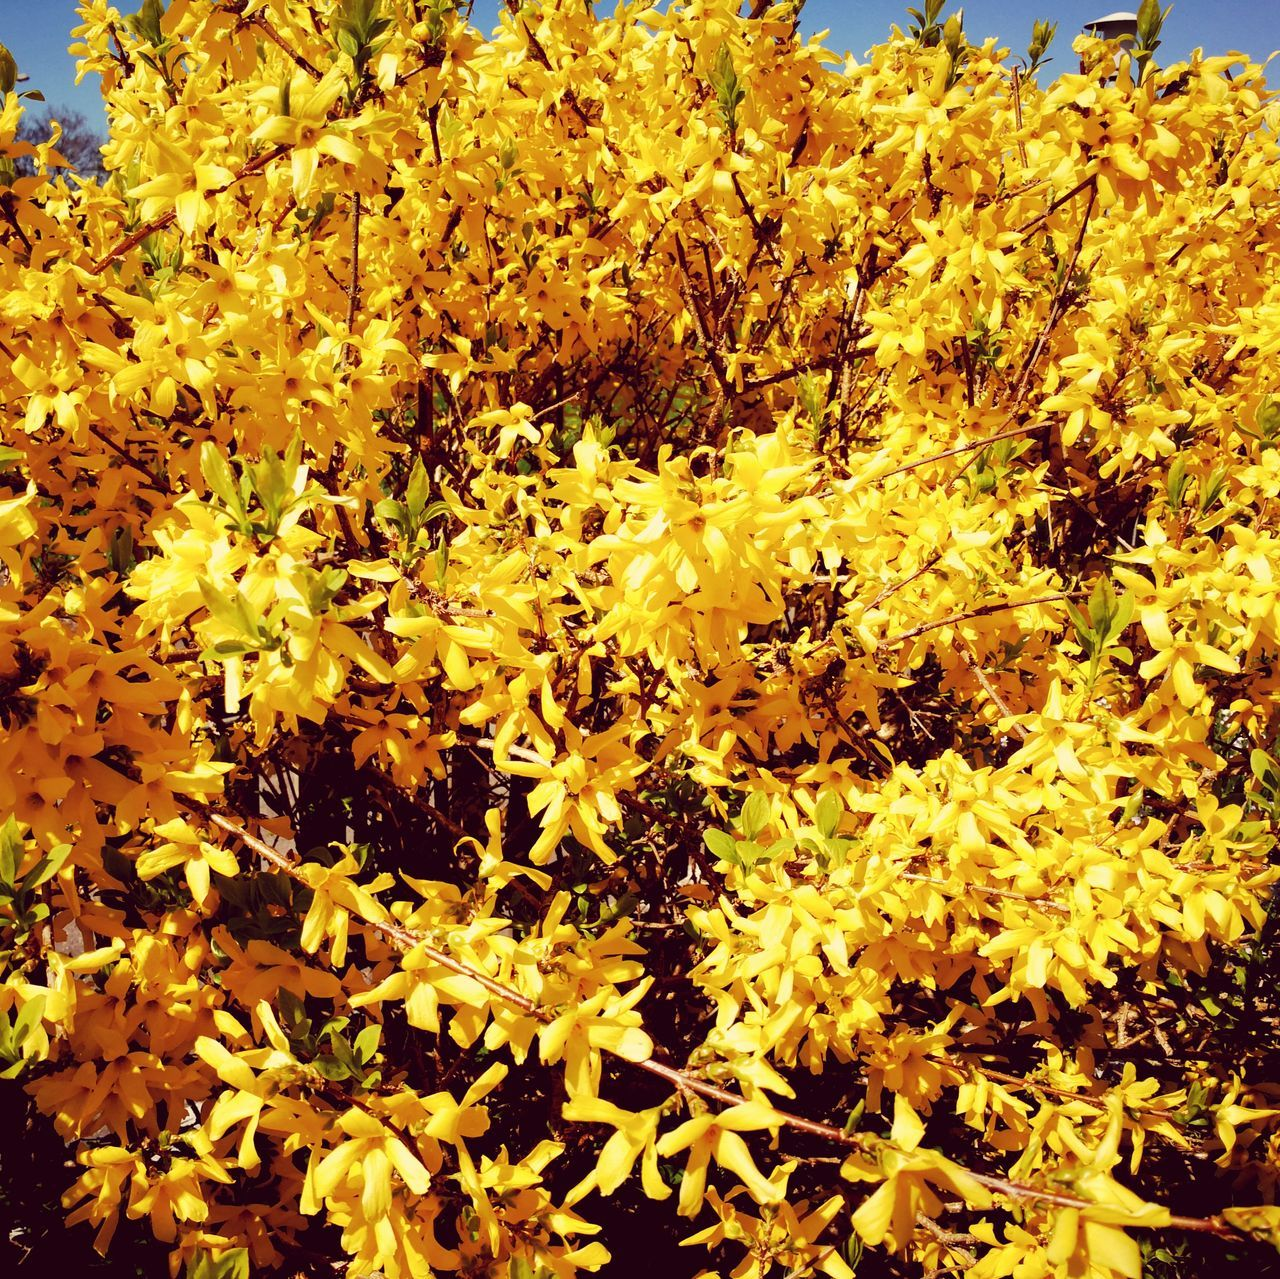 Yellow Gold Colored Nature No People Close-up Beauty In Nature Backgrounds Growth Full Frame Gold Outdoors Day Sun Spring Spring Flowers Lovley  Beauty Petal Leaf Plant Fragility Freshness Flower Blue Sky